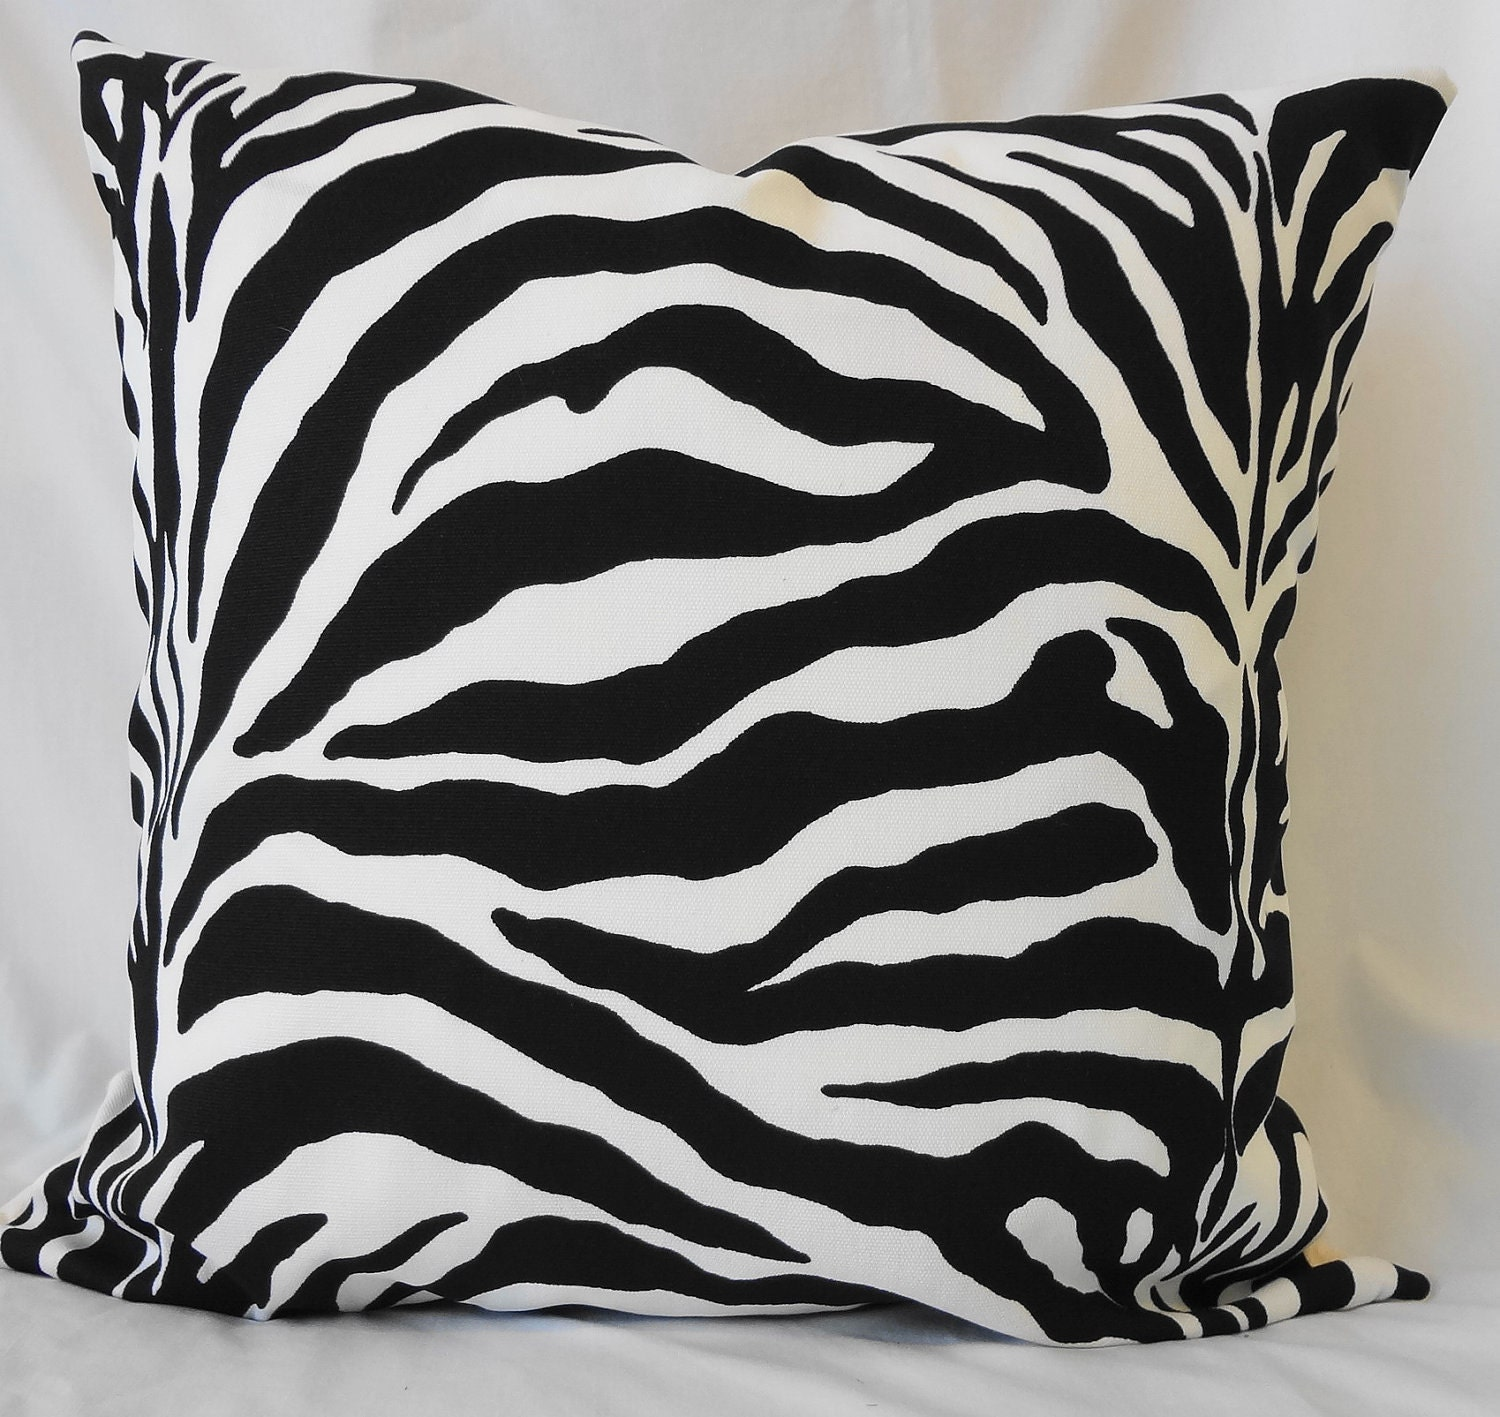 Decorative Zebra Pillow Cover Throw Pillow Cover in Black and